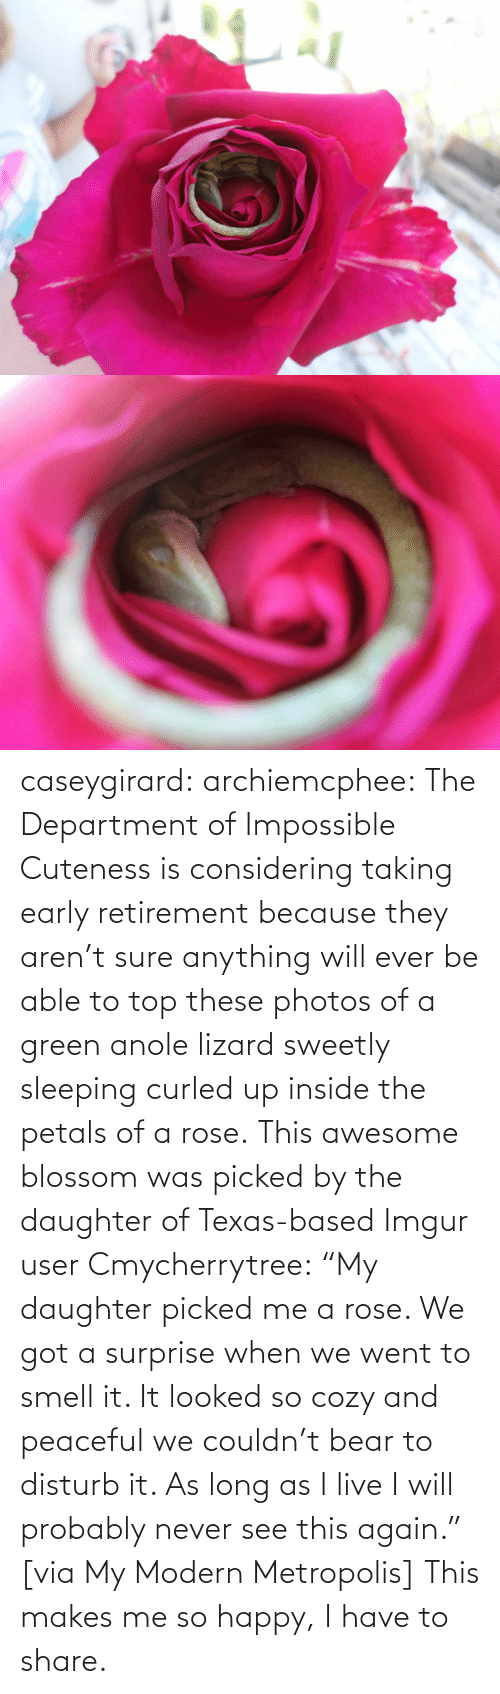 "org: caseygirard:  archiemcphee:   The Department of Impossible Cuteness is considering taking early retirement because they aren't sure anything will ever be able to top these photos of a green anole lizard sweetly sleeping curled up inside the petals of a rose. This awesome blossom was picked by the daughter of Texas-based Imgur user Cmycherrytree: ""My daughter picked me a rose. We got a surprise when we went to smell it. It looked so cozy and peaceful we couldn't bear to disturb it. As long as I live I will probably never see this again."" [via My Modern Metropolis]   This makes me so happy, I have to share."